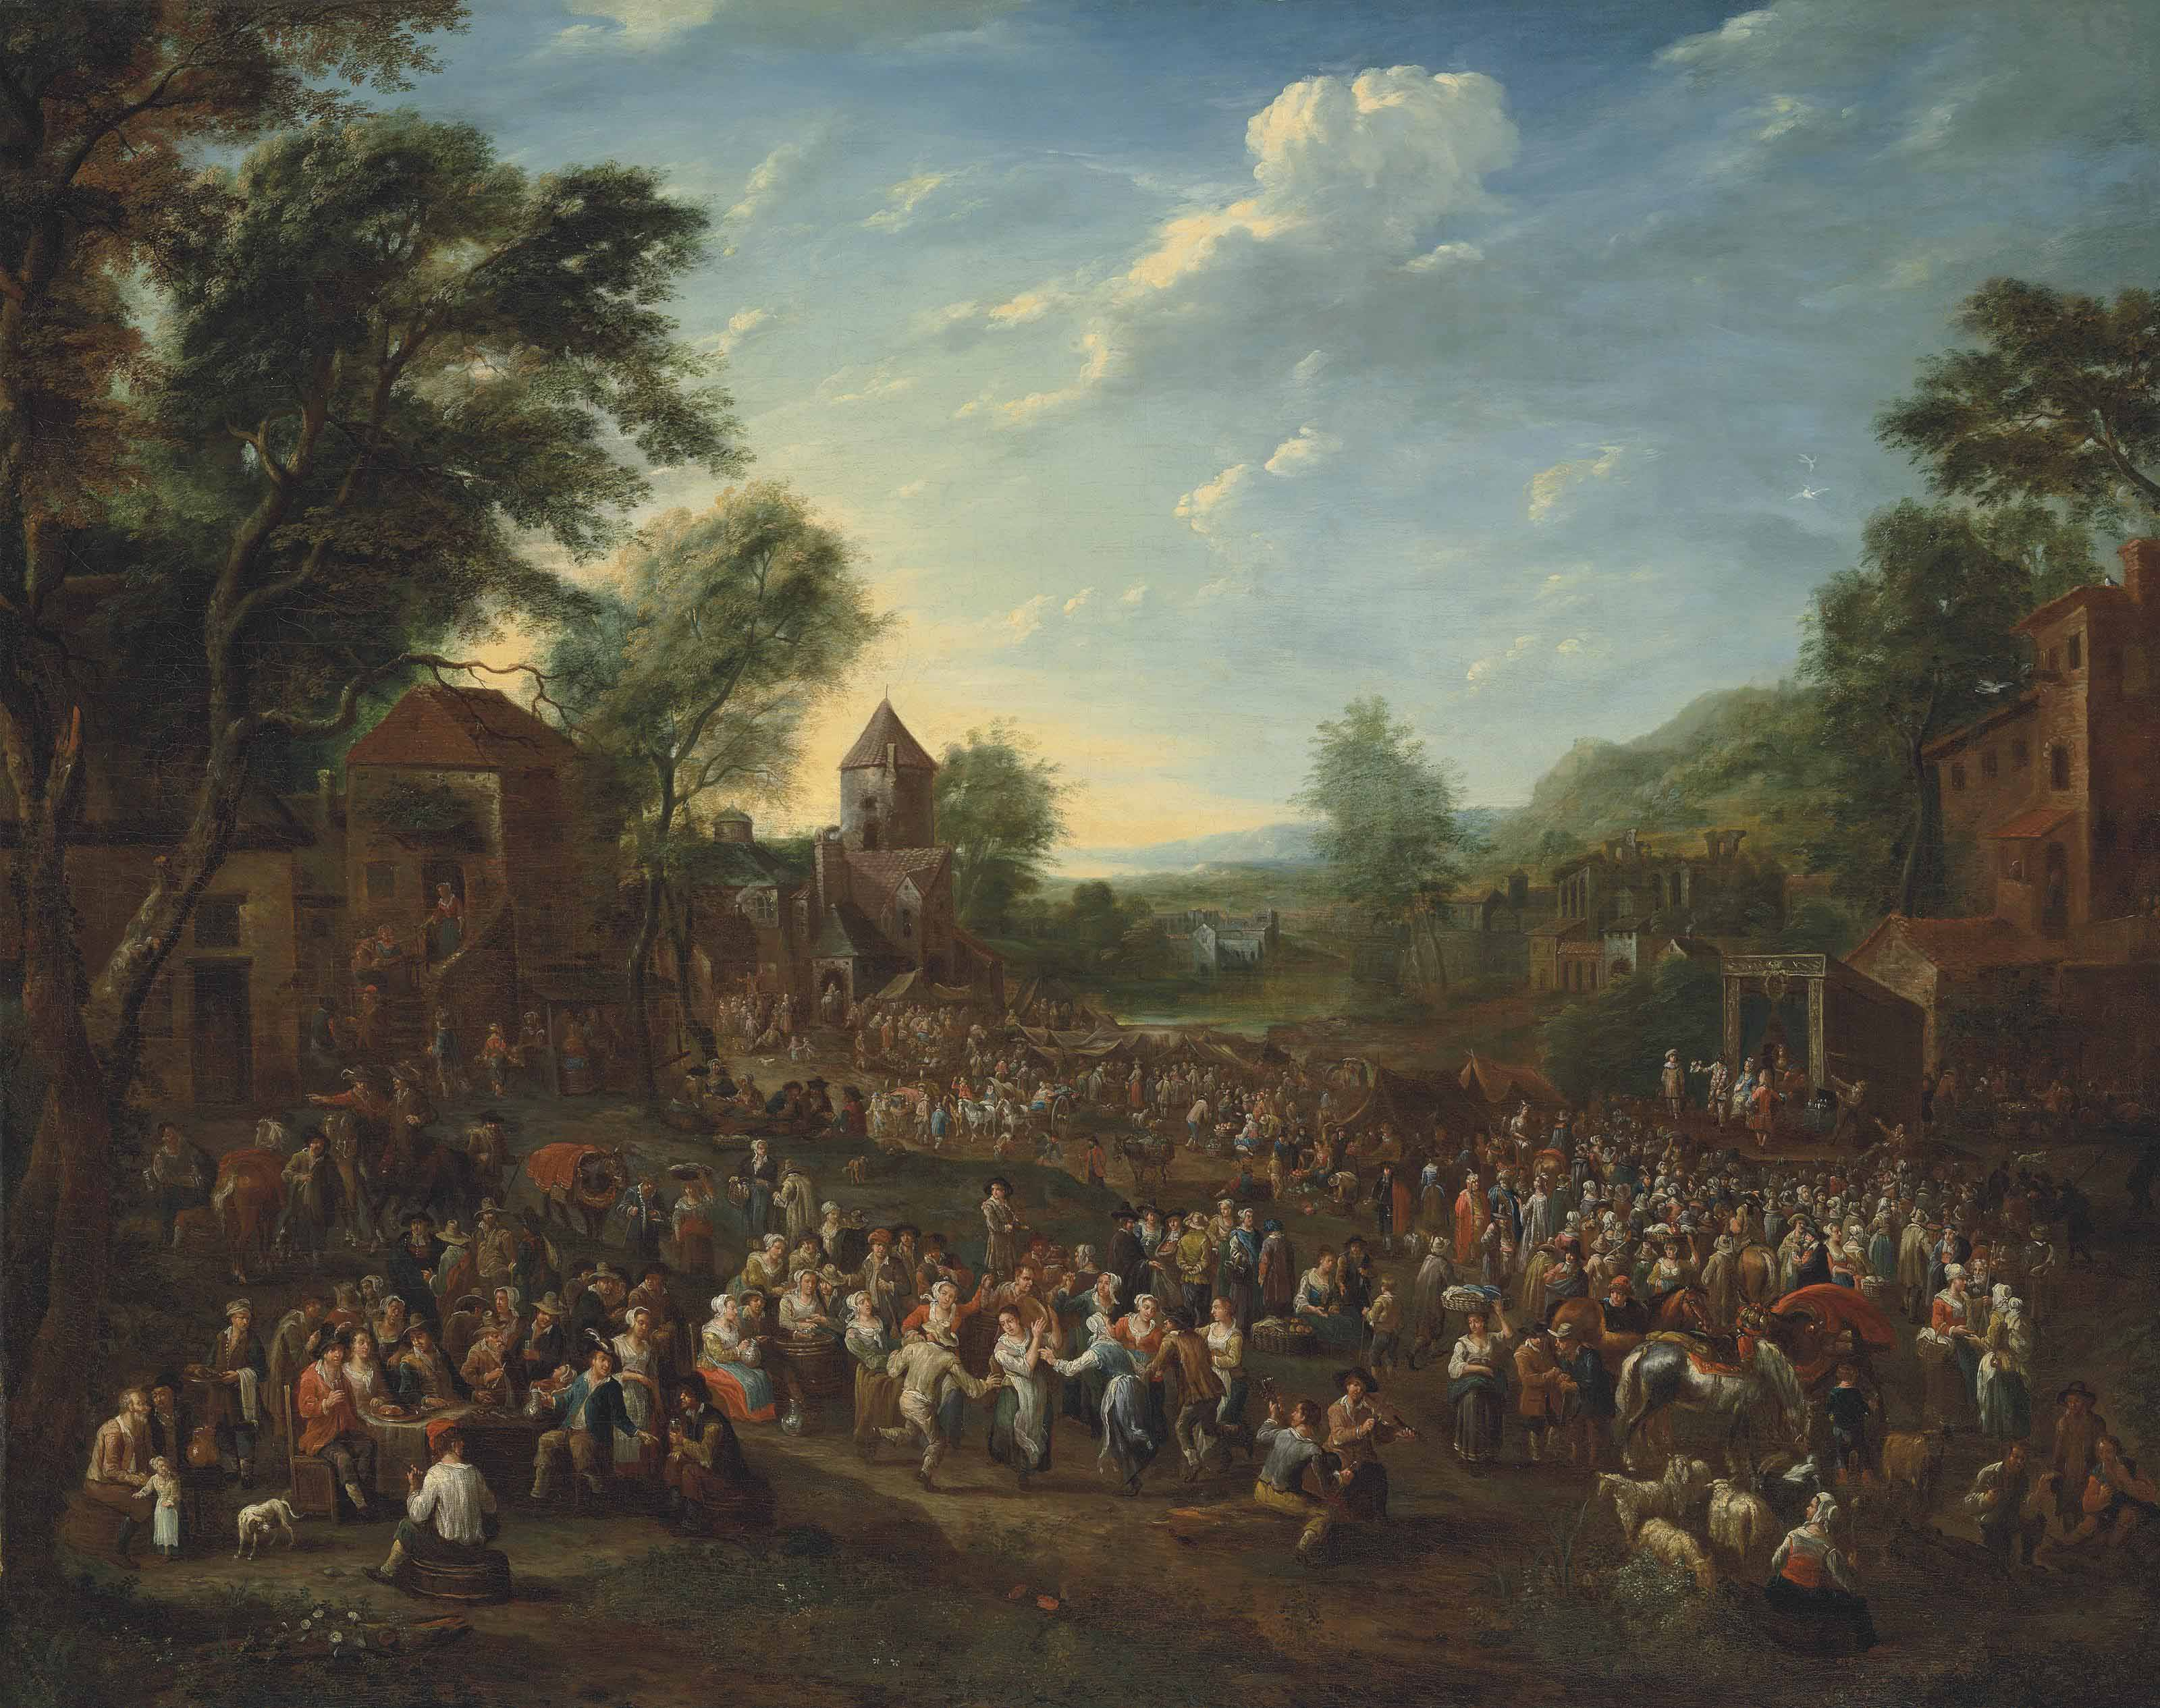 A village kermesse with revellers dancing and making merry